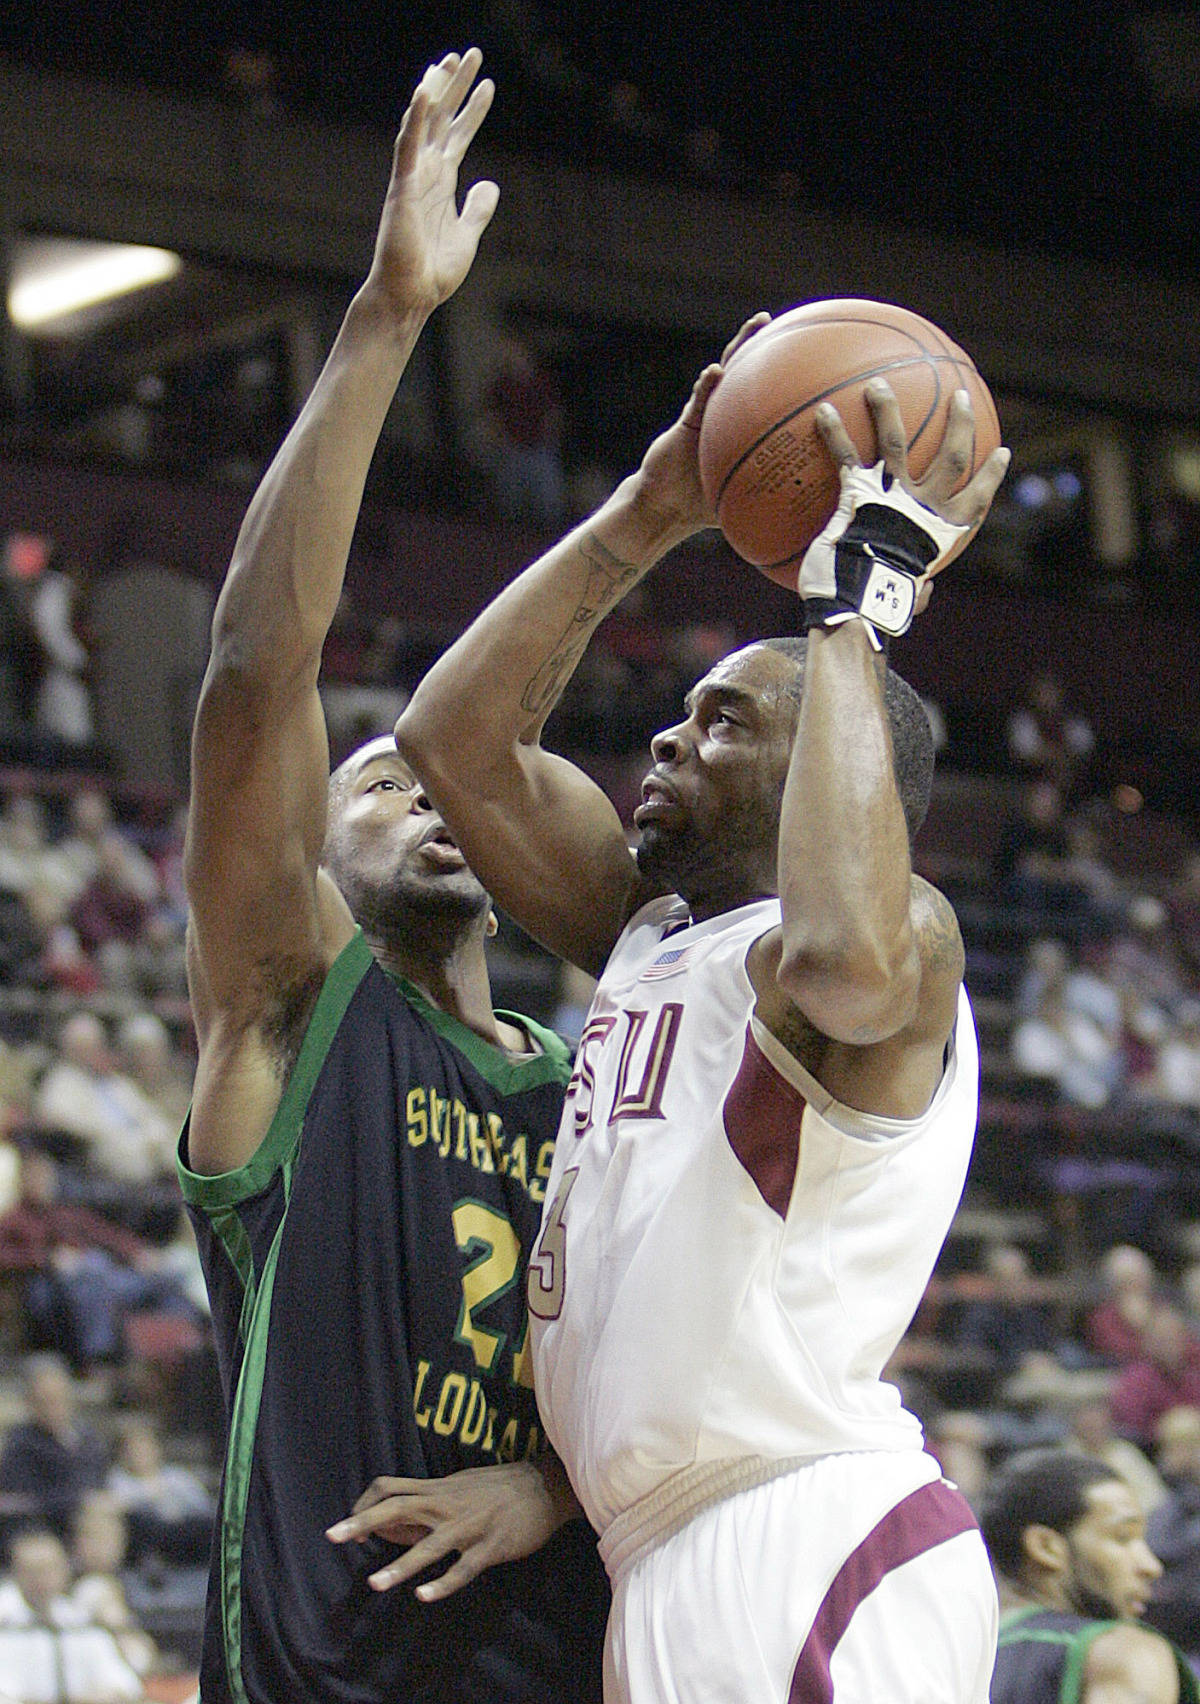 Florida State's Isaiah Swann drives for the basket despite the defense of Southeastern Louisiana's Joseph Polite during the first half of a basketball game Sunday, Dec. 10, 2006, in Tallahassee, Fla. (AP Photo/Steve Cannon)